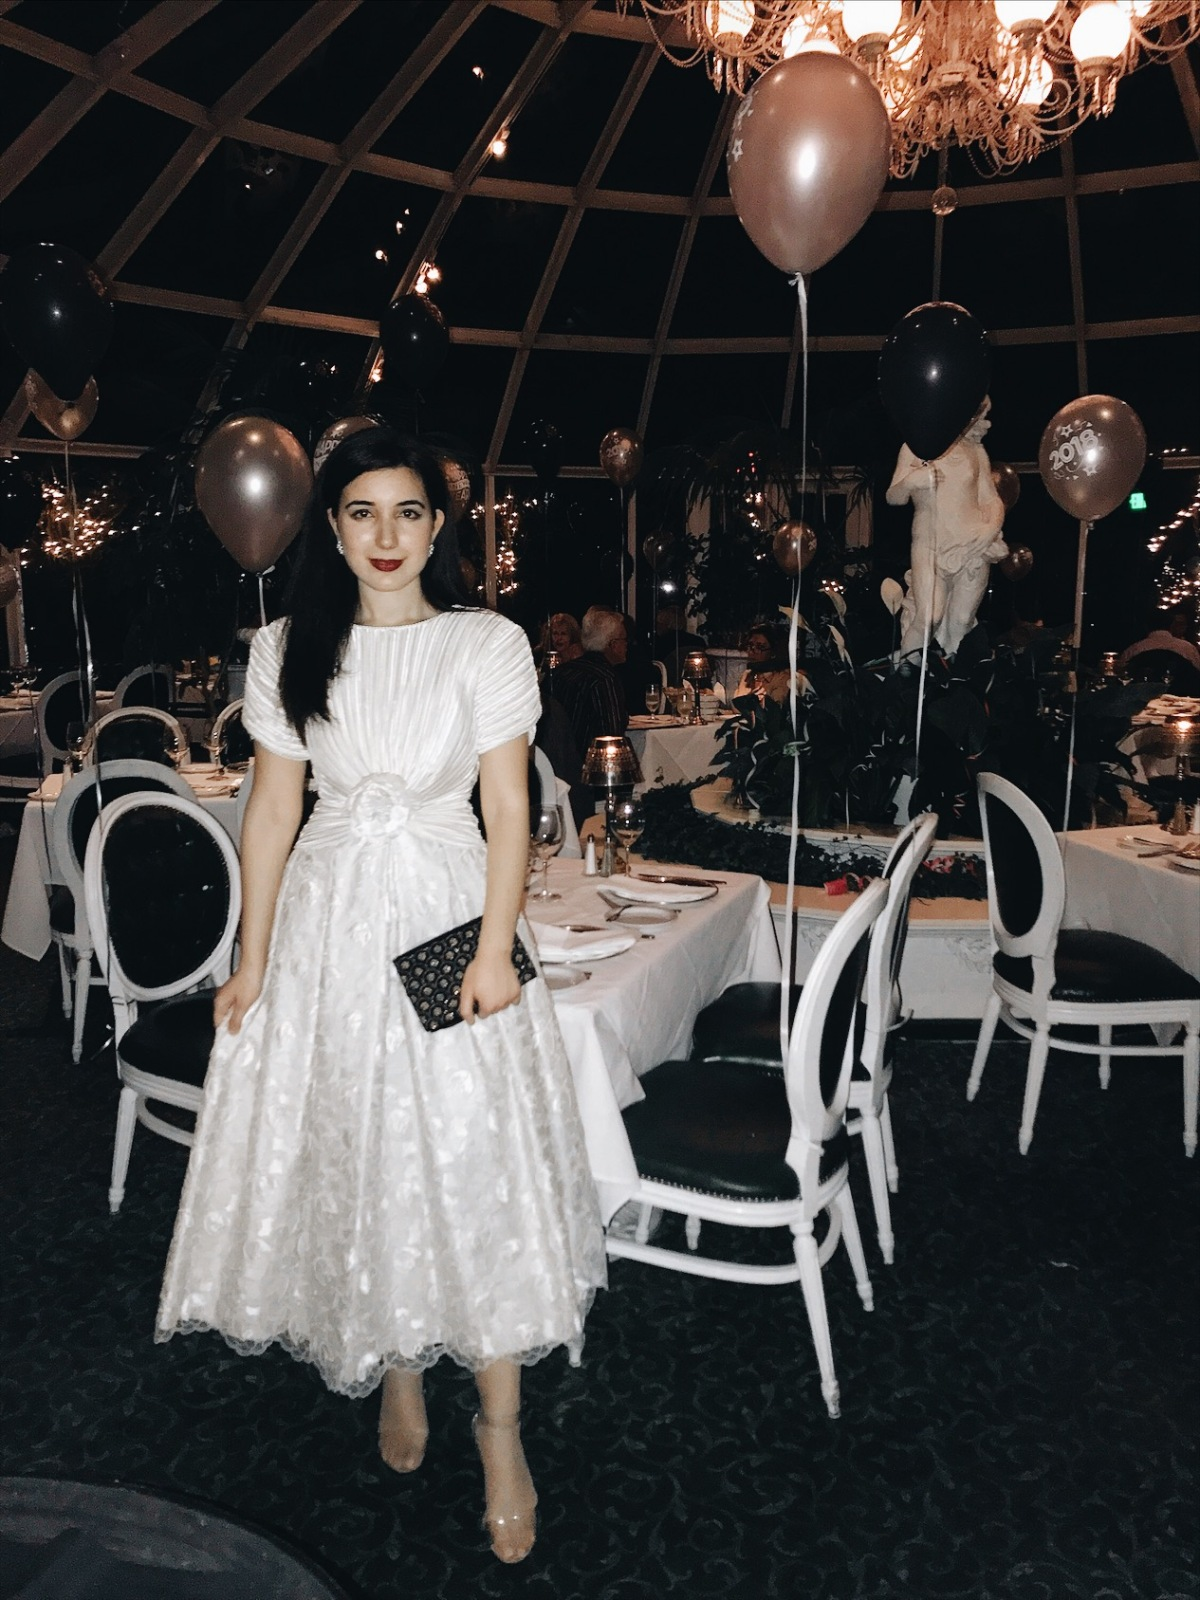 New Years Eve, vintage dress, vintage couture, Sardine Factory, Monterey, California, formal dress, dinner, fancy dinner, fashion blogger, lookbook, ootd, what I wore, fashionista, naked shoes, vintage fashion, vintage style, clutch, 2018